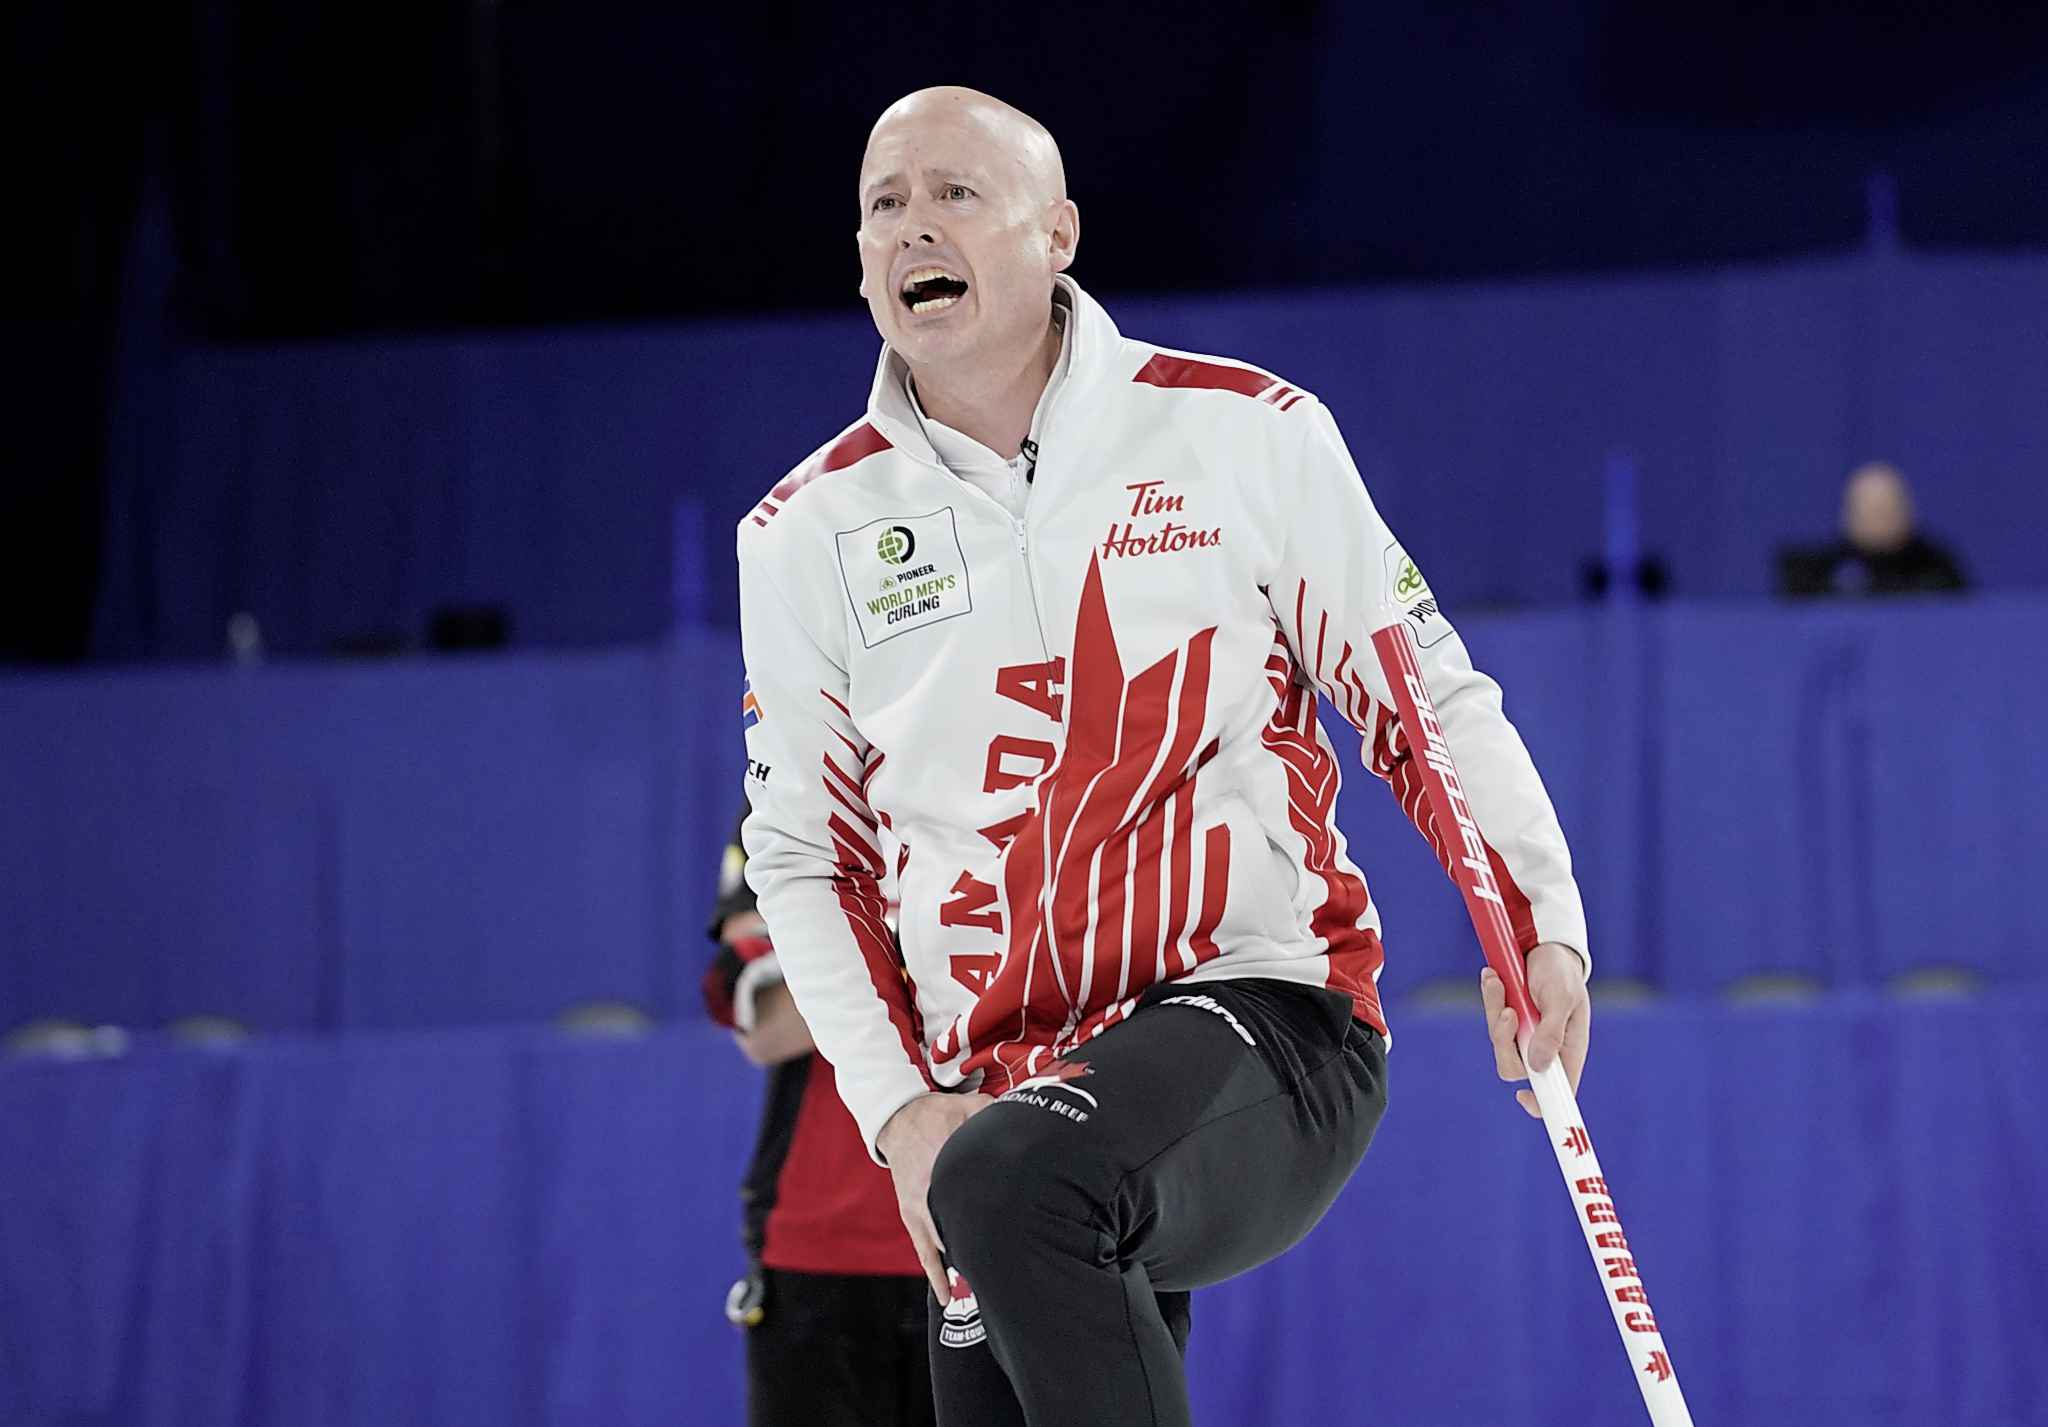 The 2016 world champion skip, Edmonton's Kevin Koe, will be in Portage for the Thanksgiving weekend event.